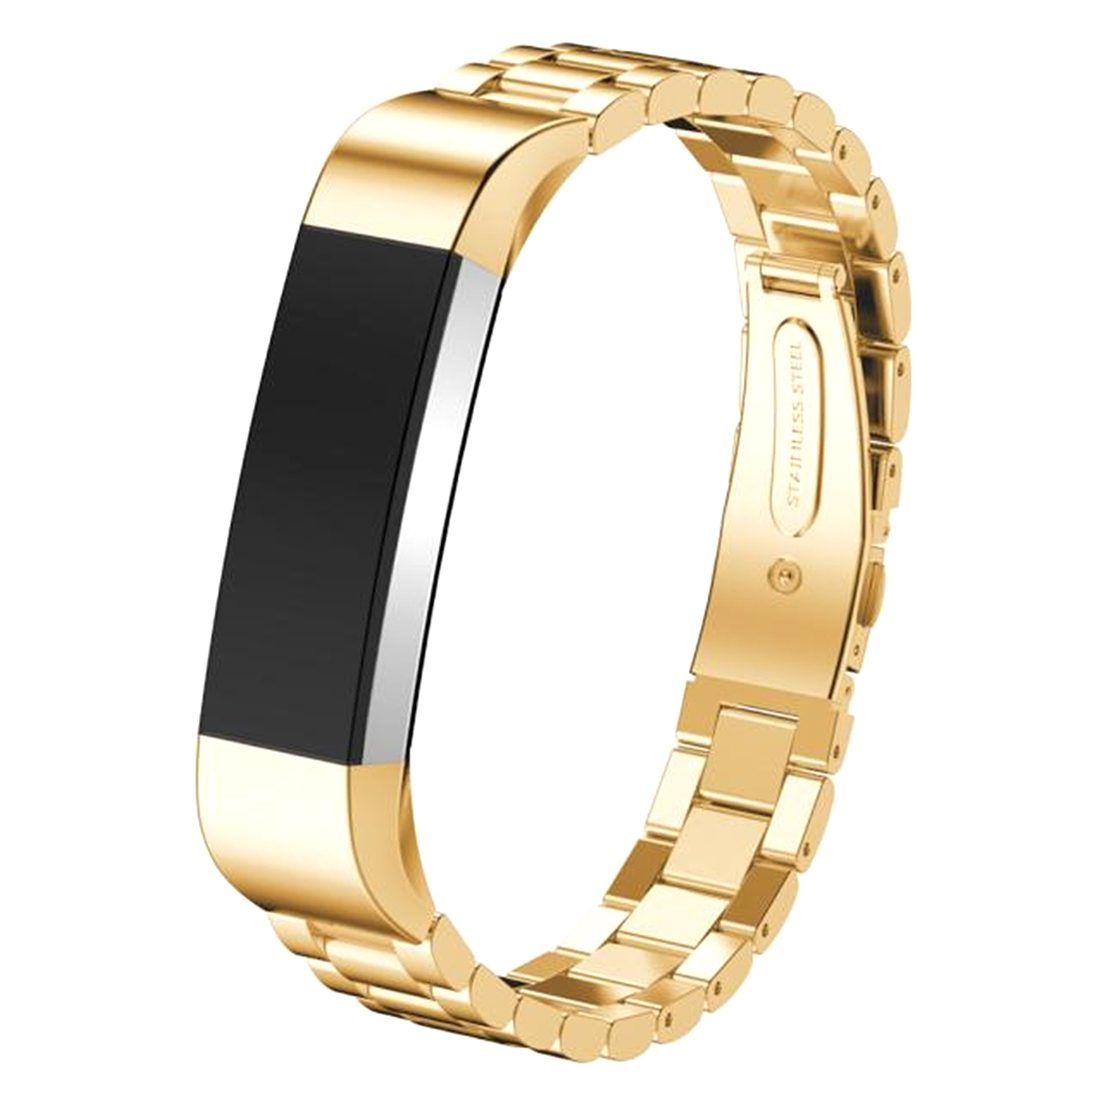 Stainless Steel Watch Band Fitness Tracker Wrist Strap For Fitbit Alta Bracelet Gold